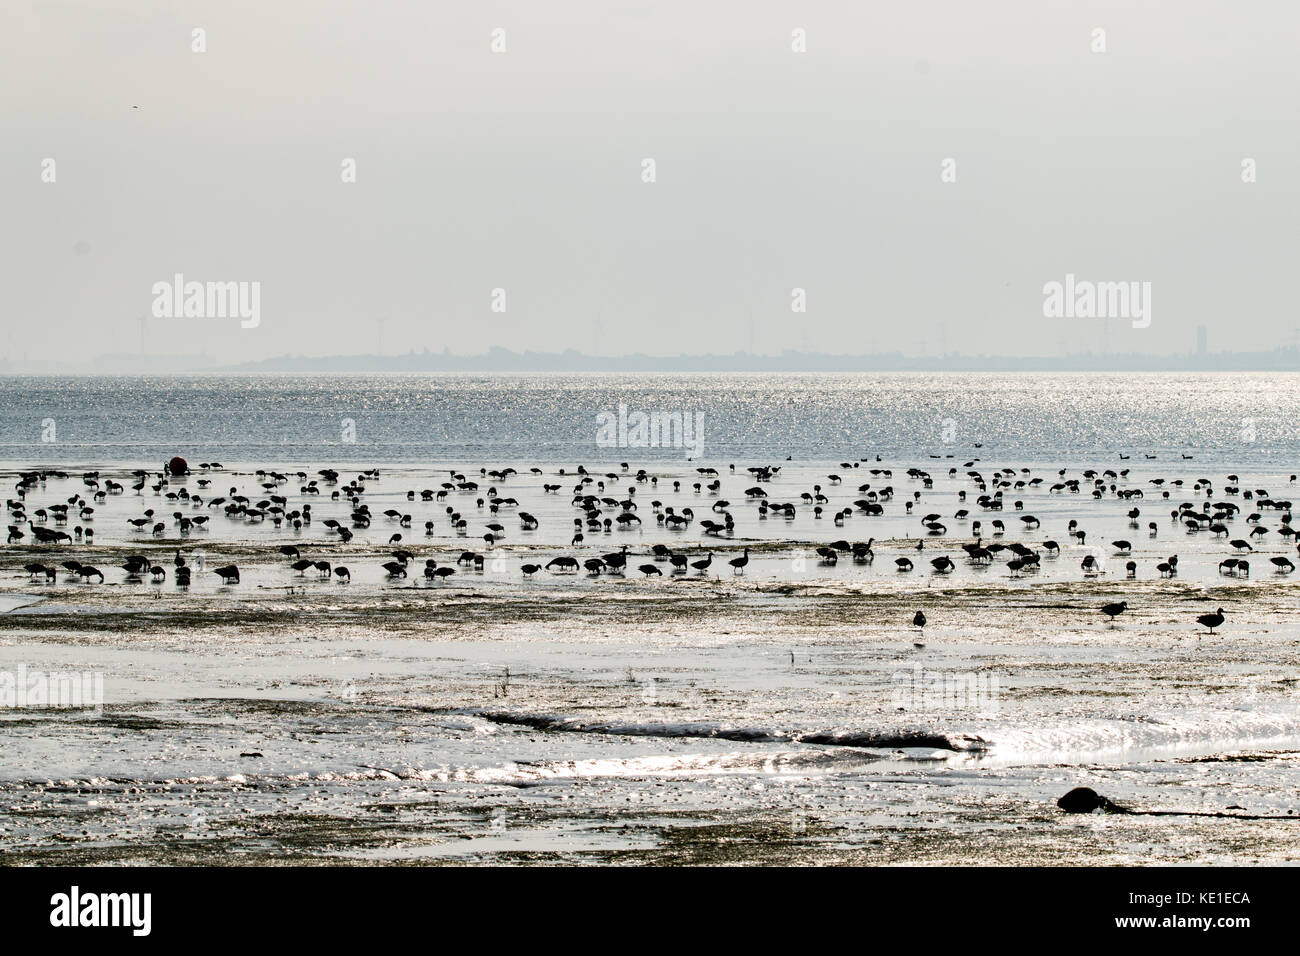 Brent Geese (Branta bernicla) feeding in the mud flats of the Thames Estuary near Southend on Sea, Essex - Stock Image